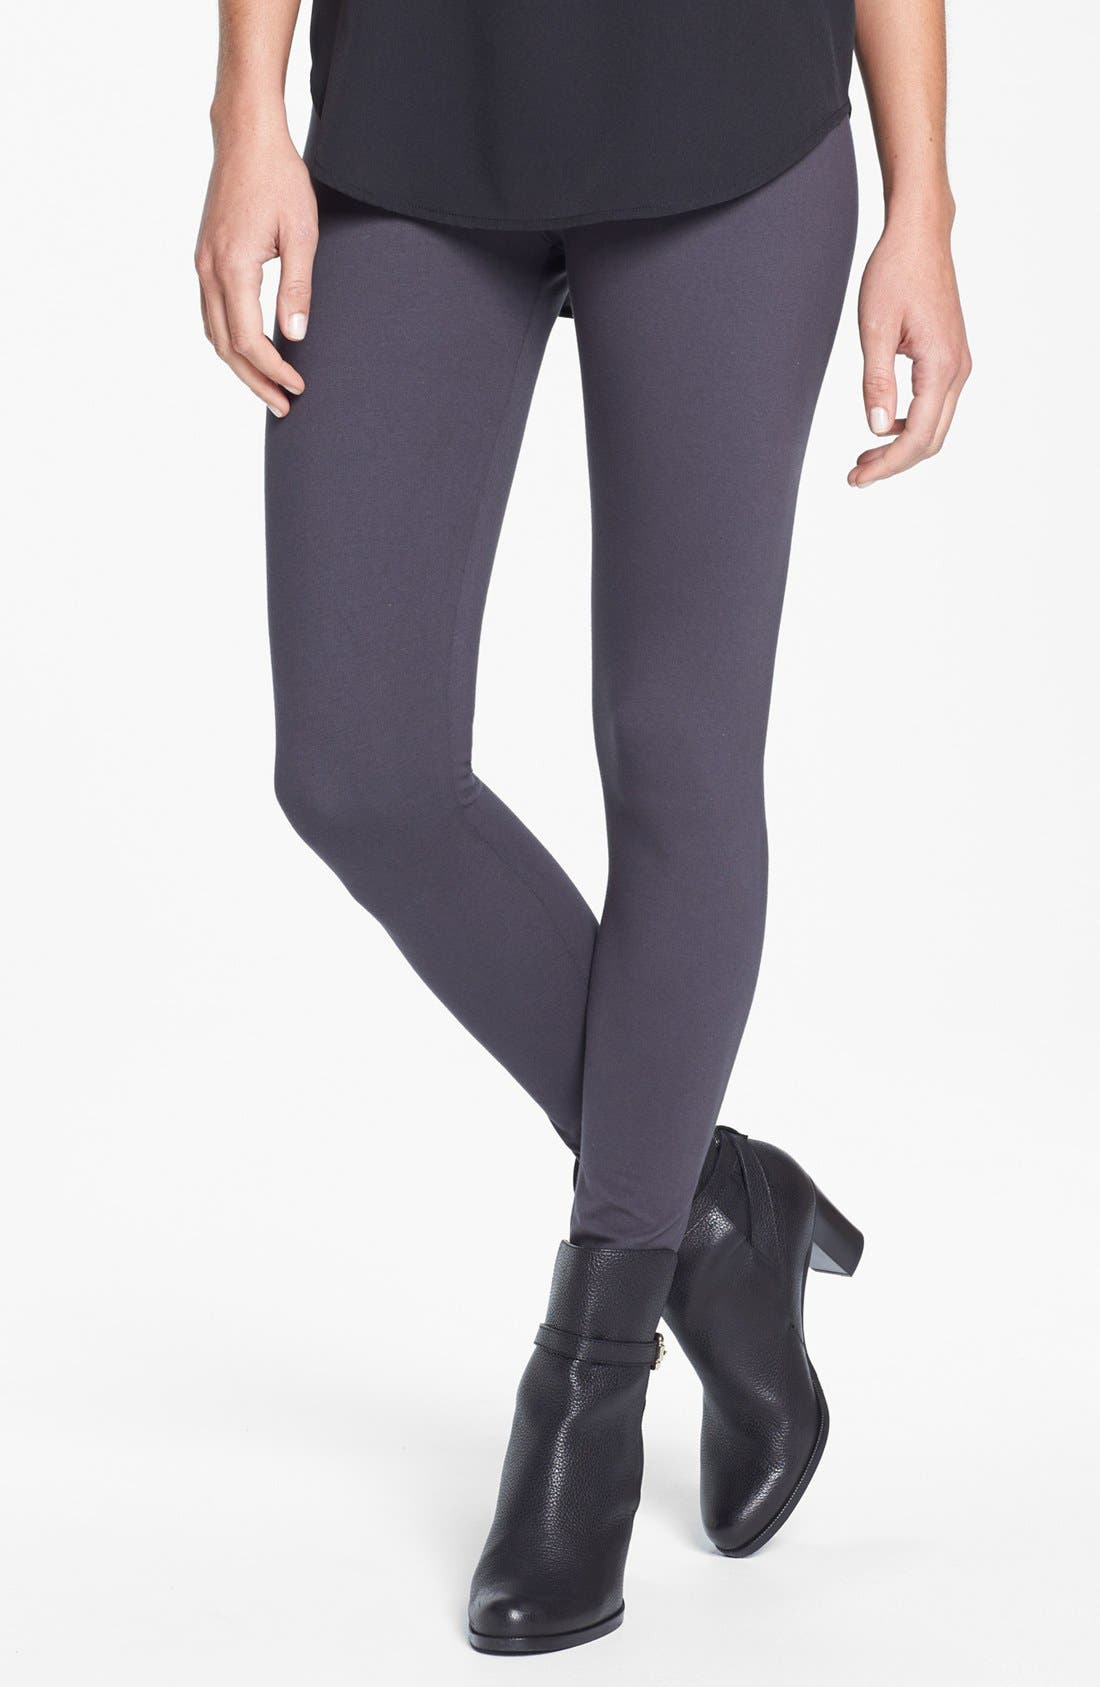 Main Image - Lyssé Control Top High Waist Leggings